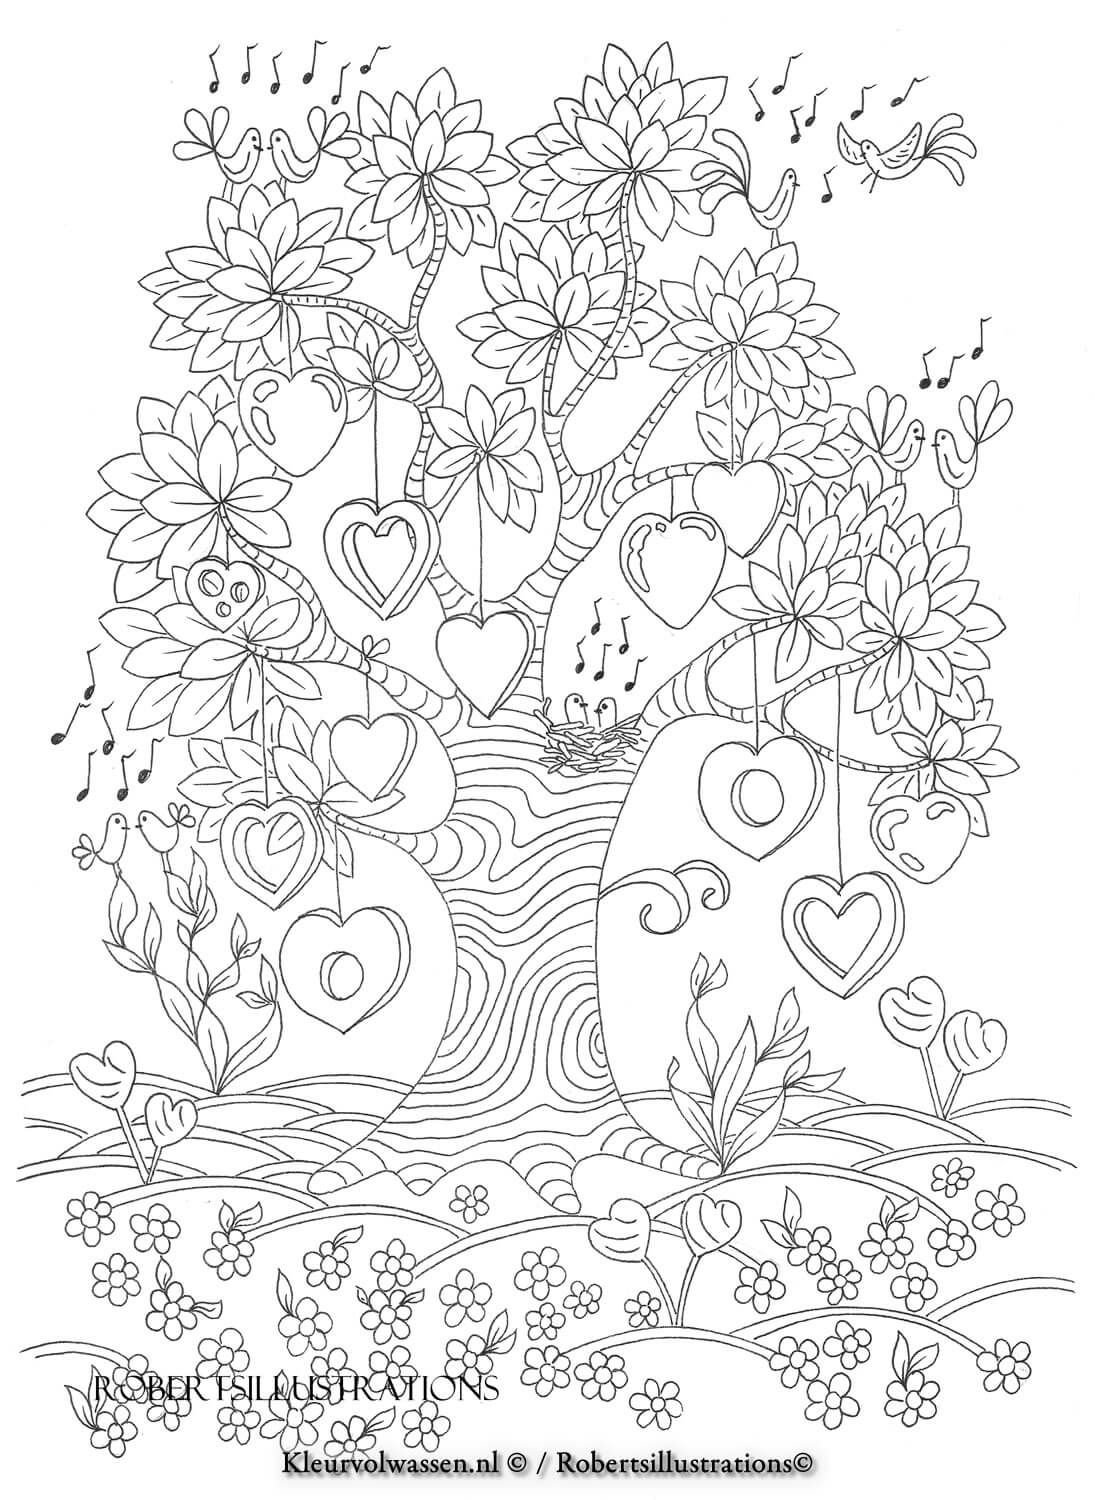 Pin by Linda Linebaugh on Coloring for Adults & Kids | Pinterest ...